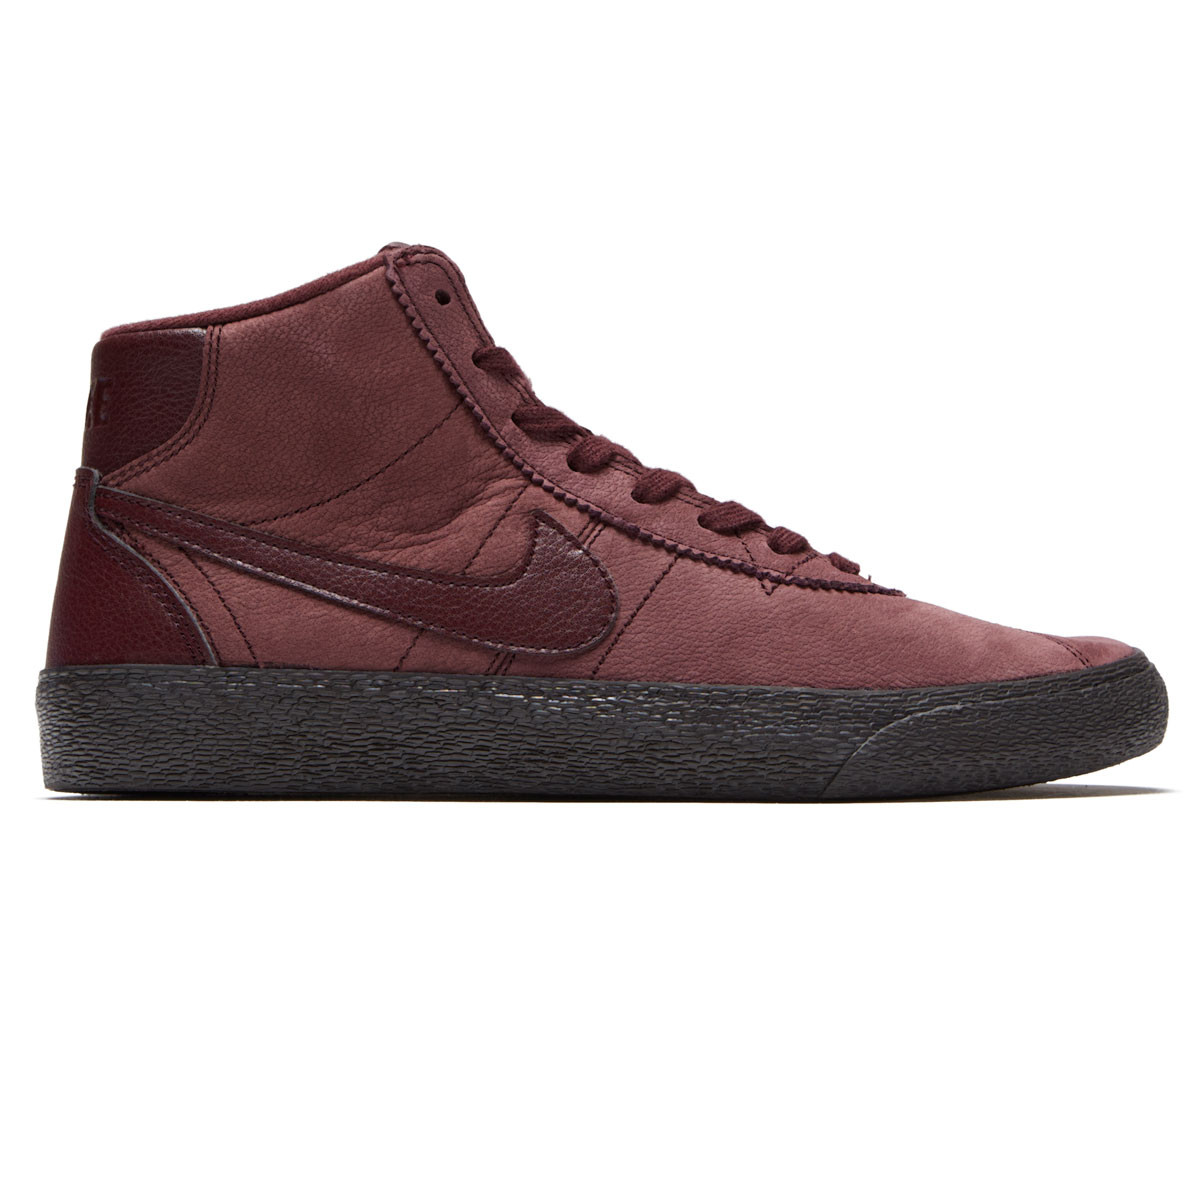 Nike SB Womens Bruin High Premium Shoes - Burgundy Crush Burgundy Crush -  10.0 3e0f42bae0